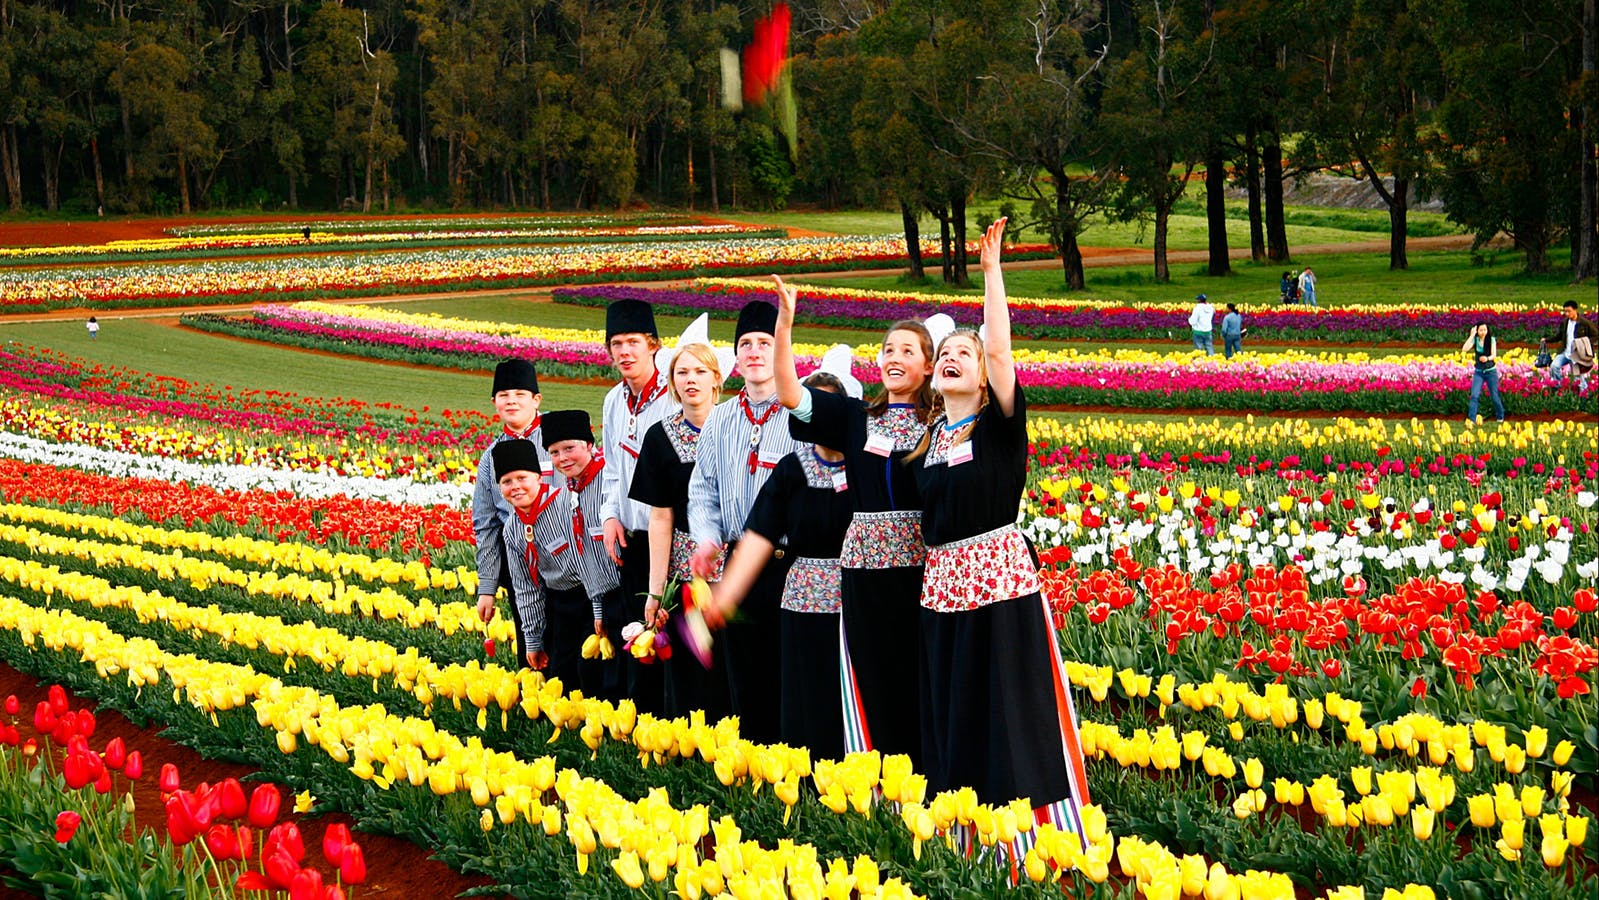 Staff dress in traditional Dutch costume.